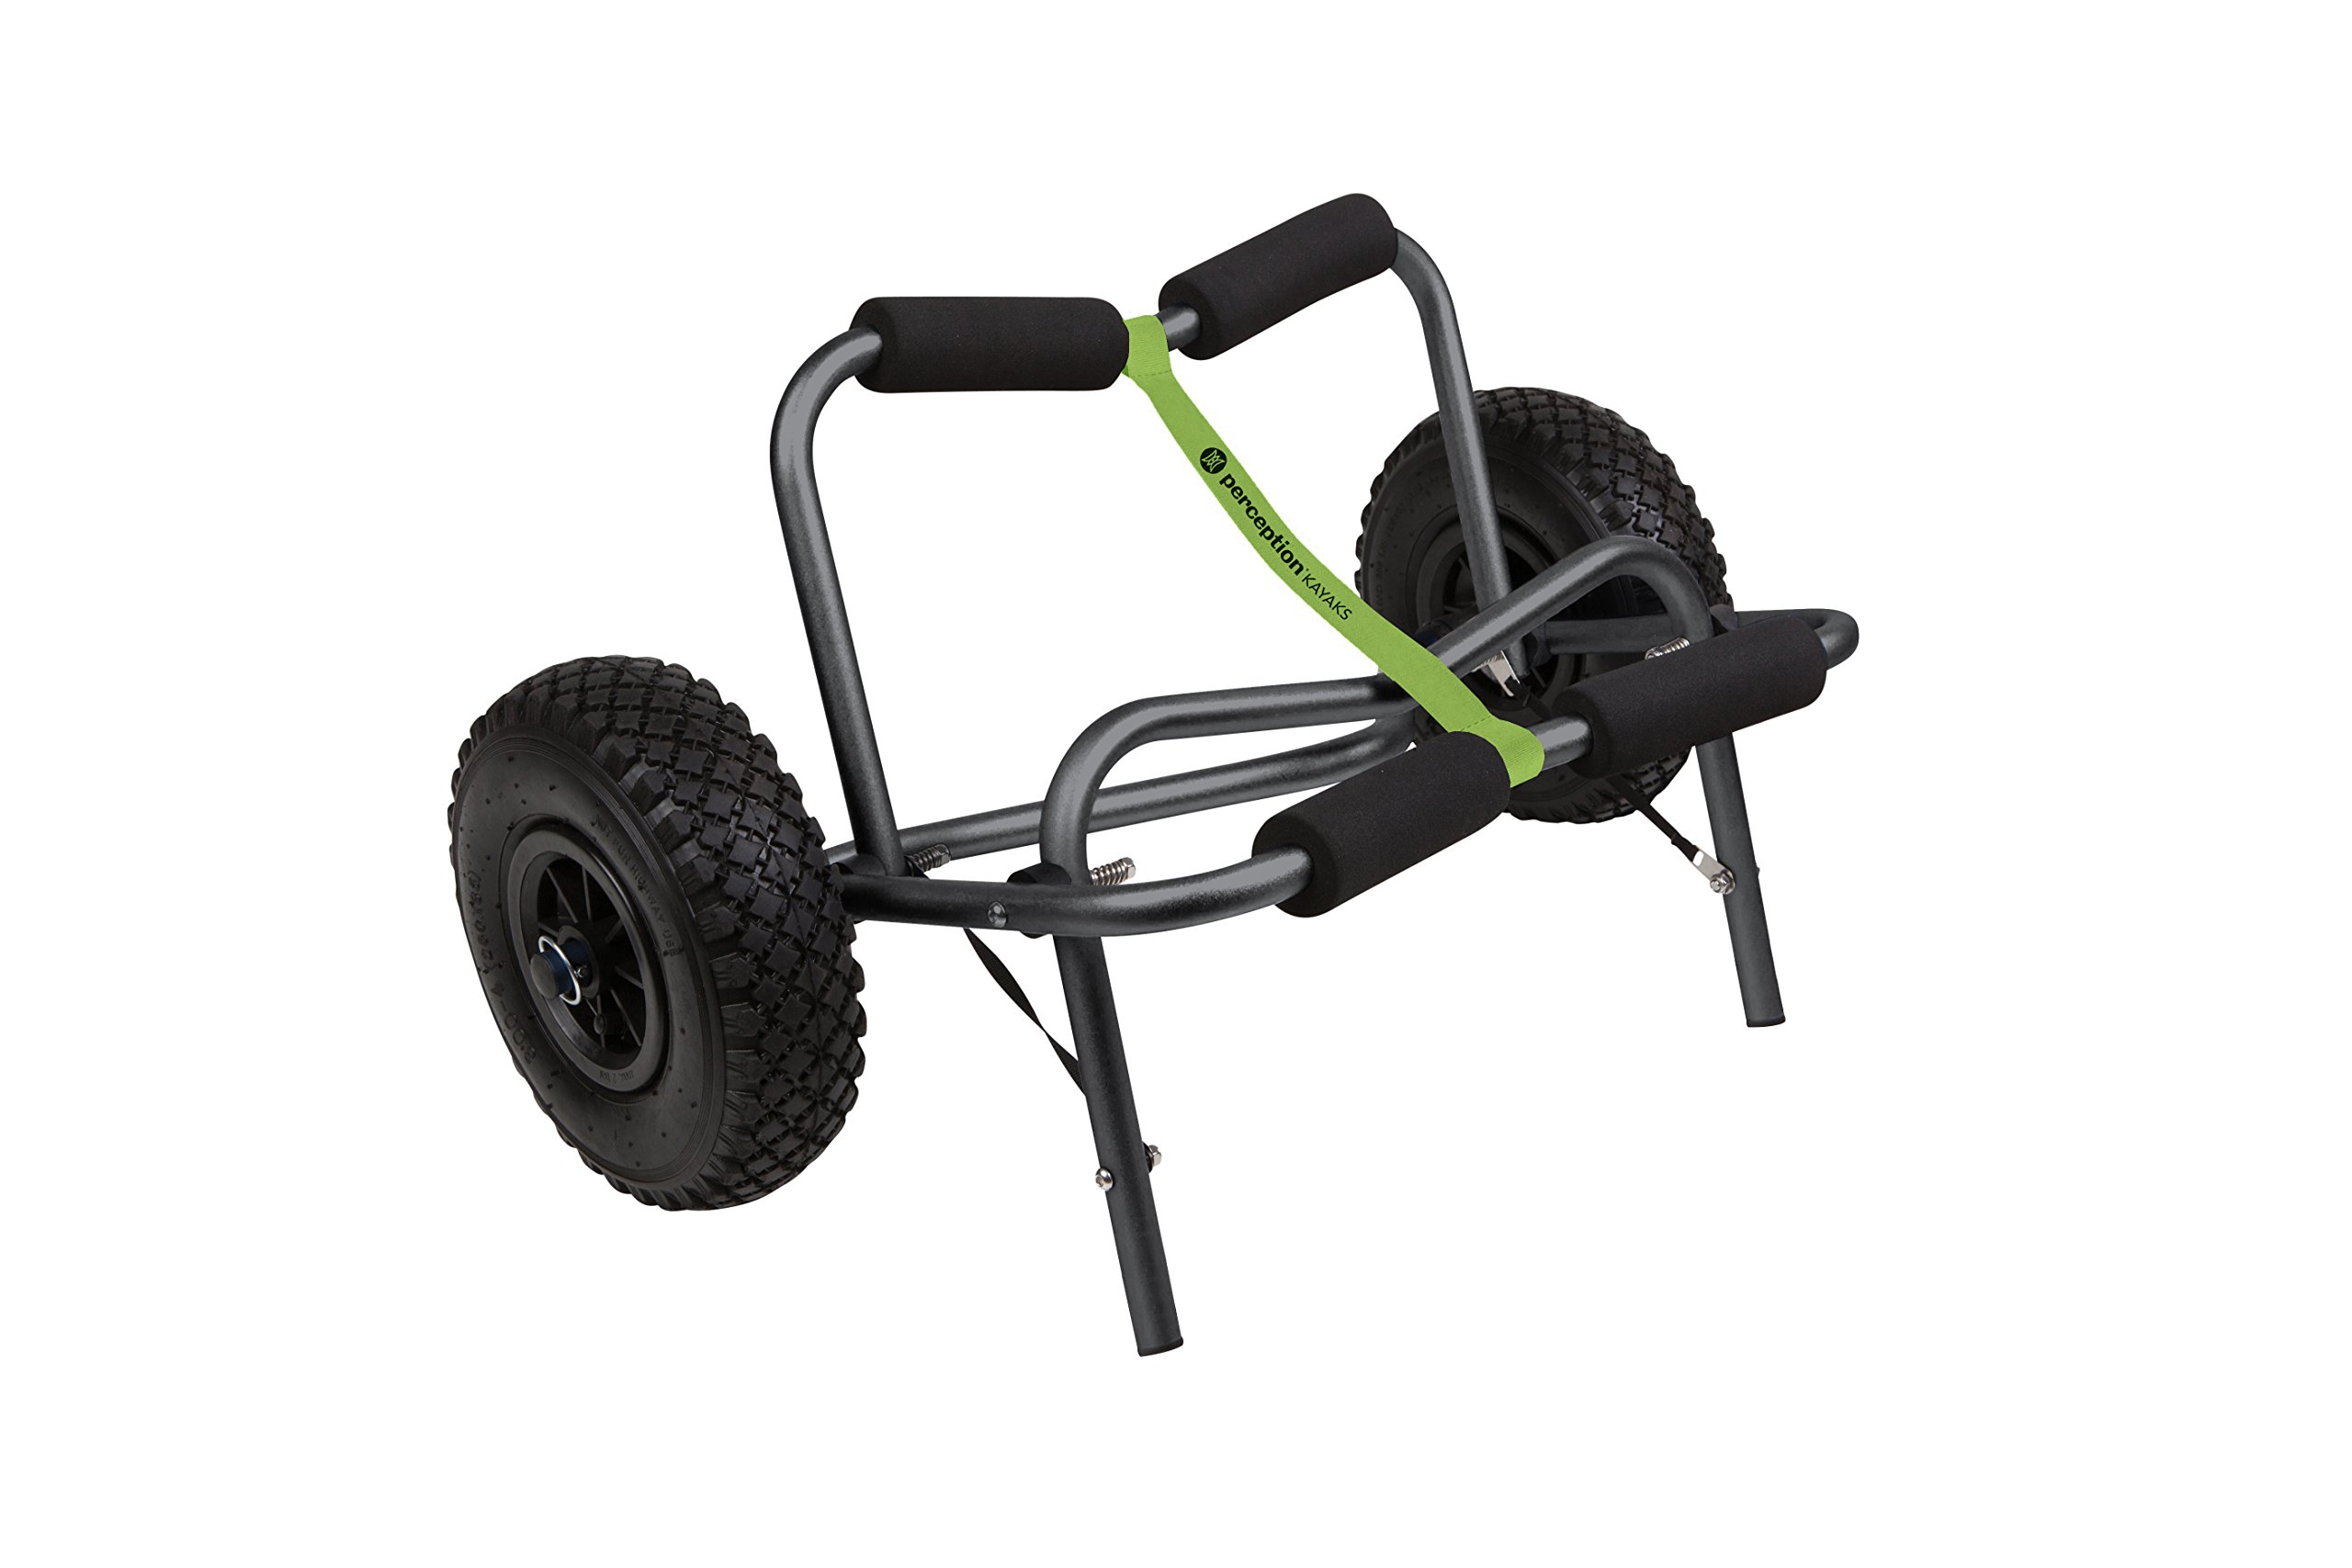 Perception Large Kayak Cart with Foam Wheels - for use on Sand/Pavement